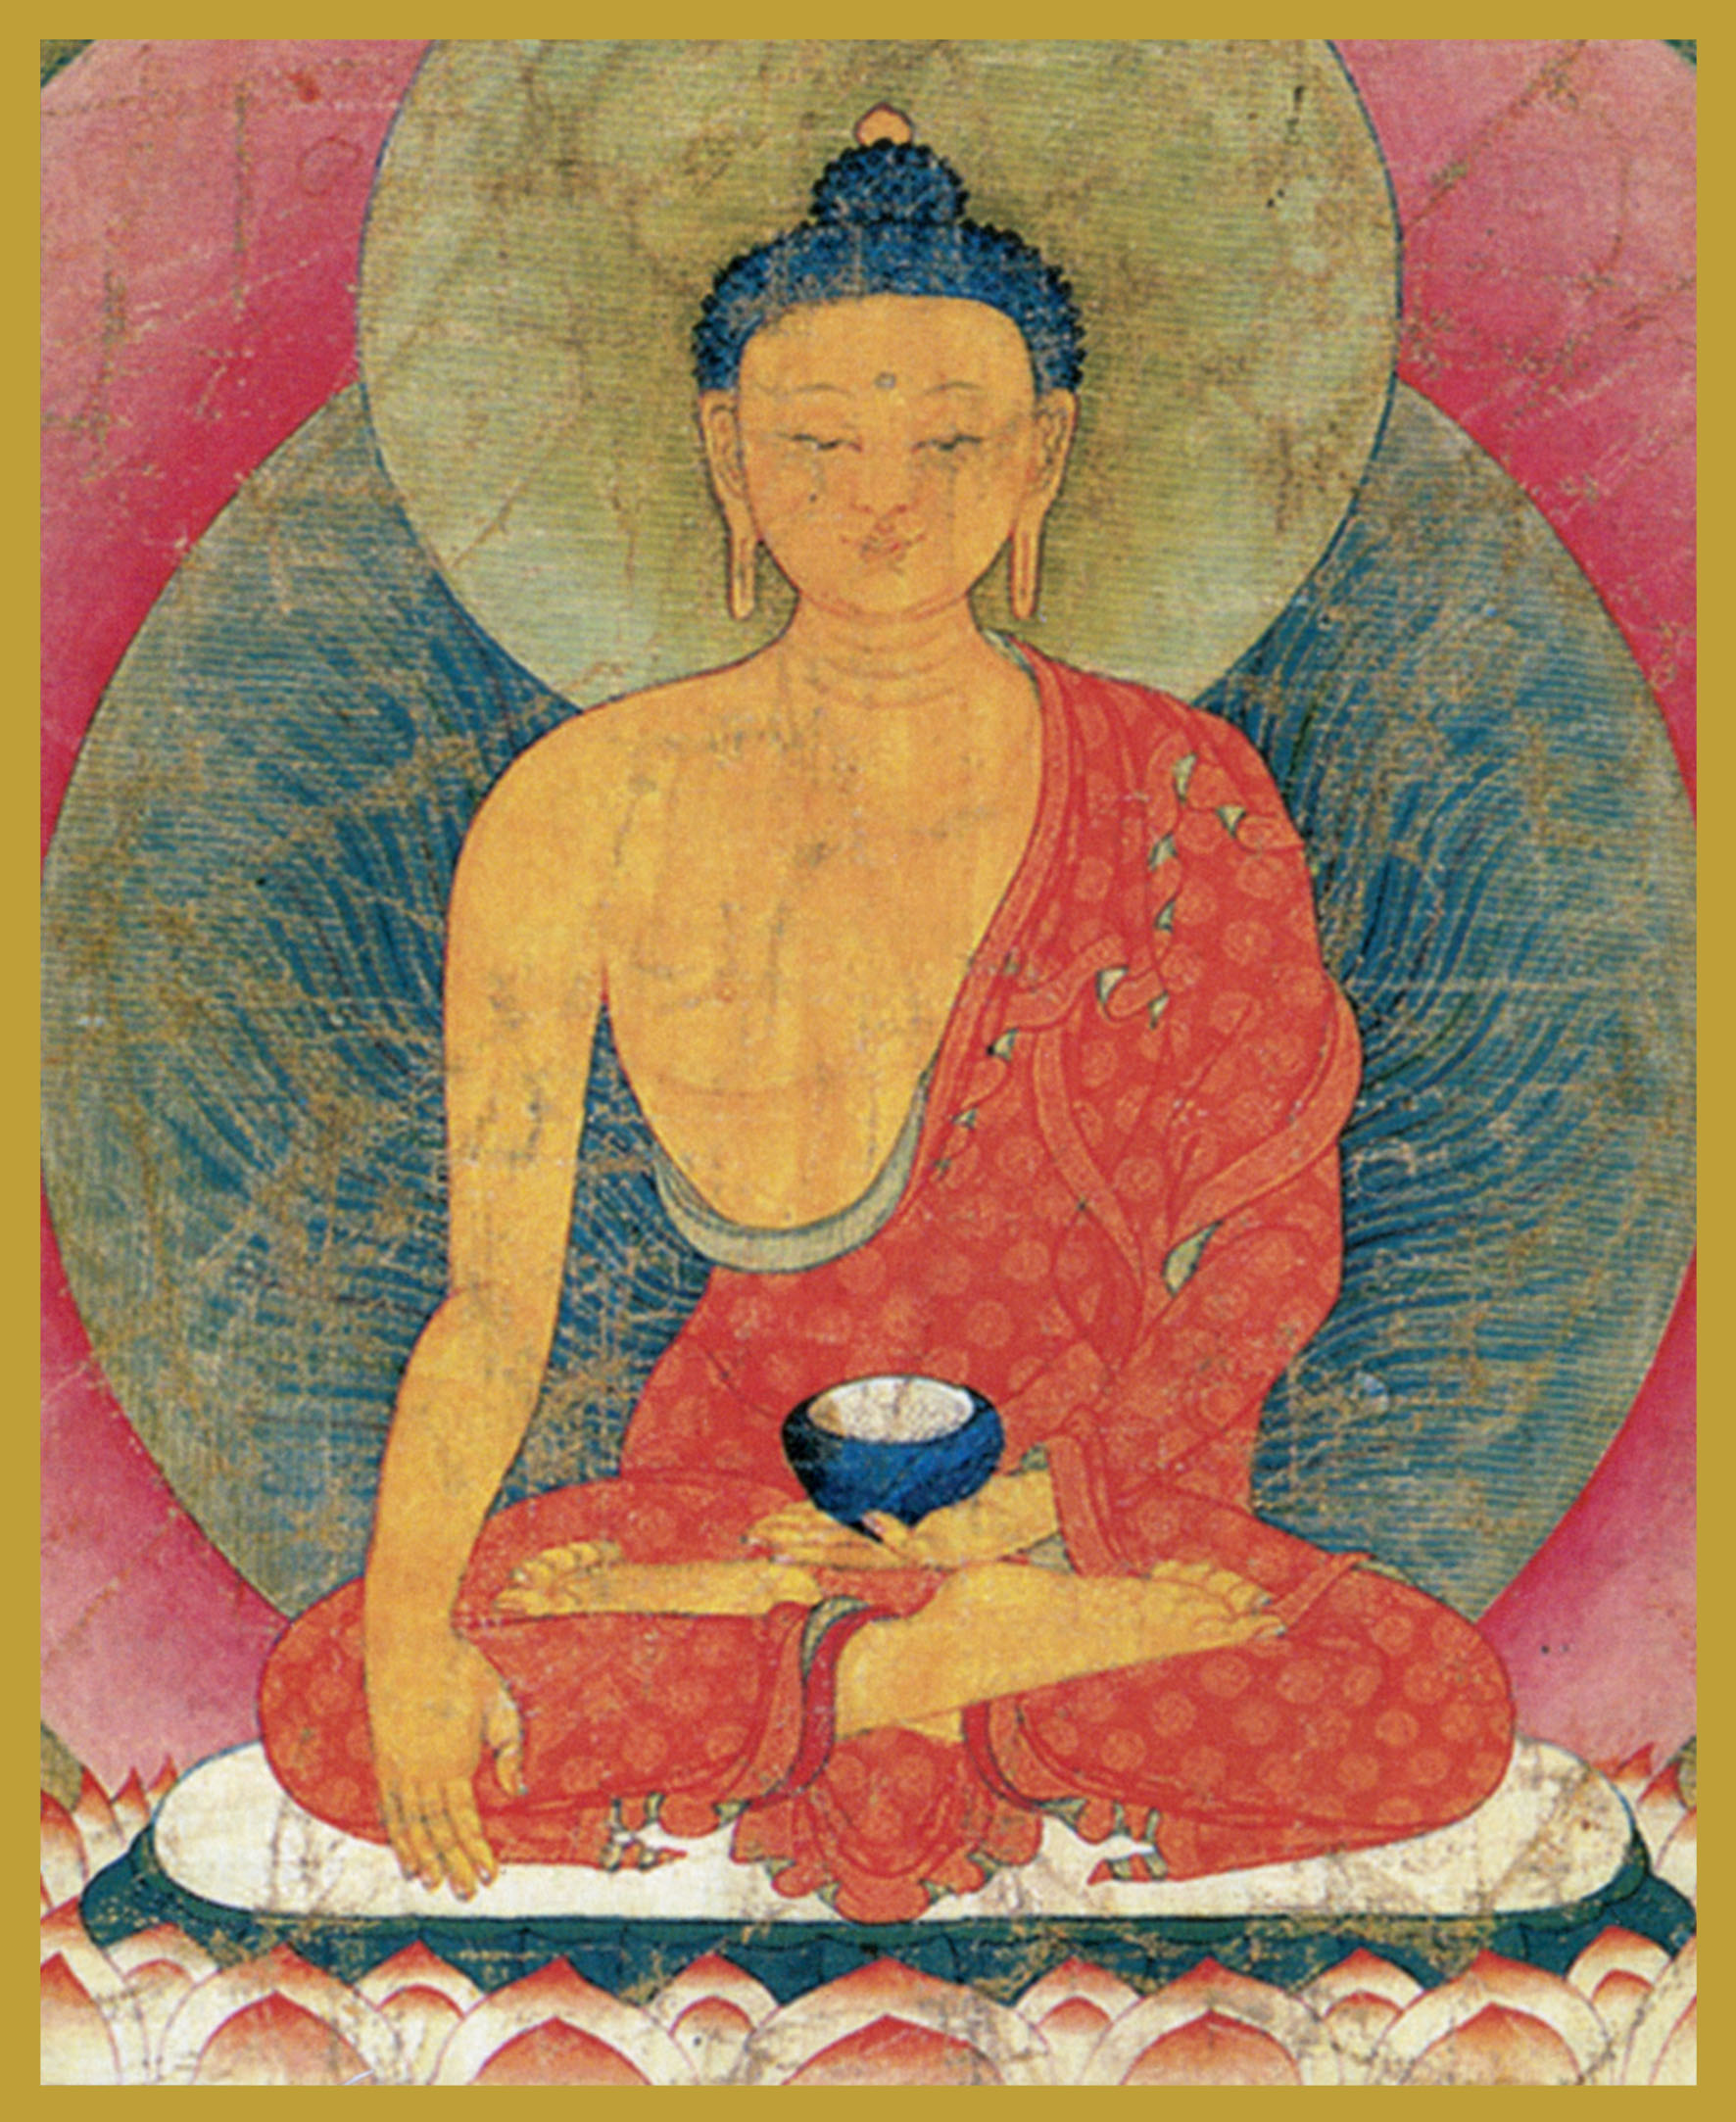 BUD-SA - Sakyamuni BuddhaThe Enlightened OneBuddha, in the sixth century BC, at the age of 35, invoked the earth as his witness when he attained Enlightenment. This is indicated by the fingers of his right hand in the